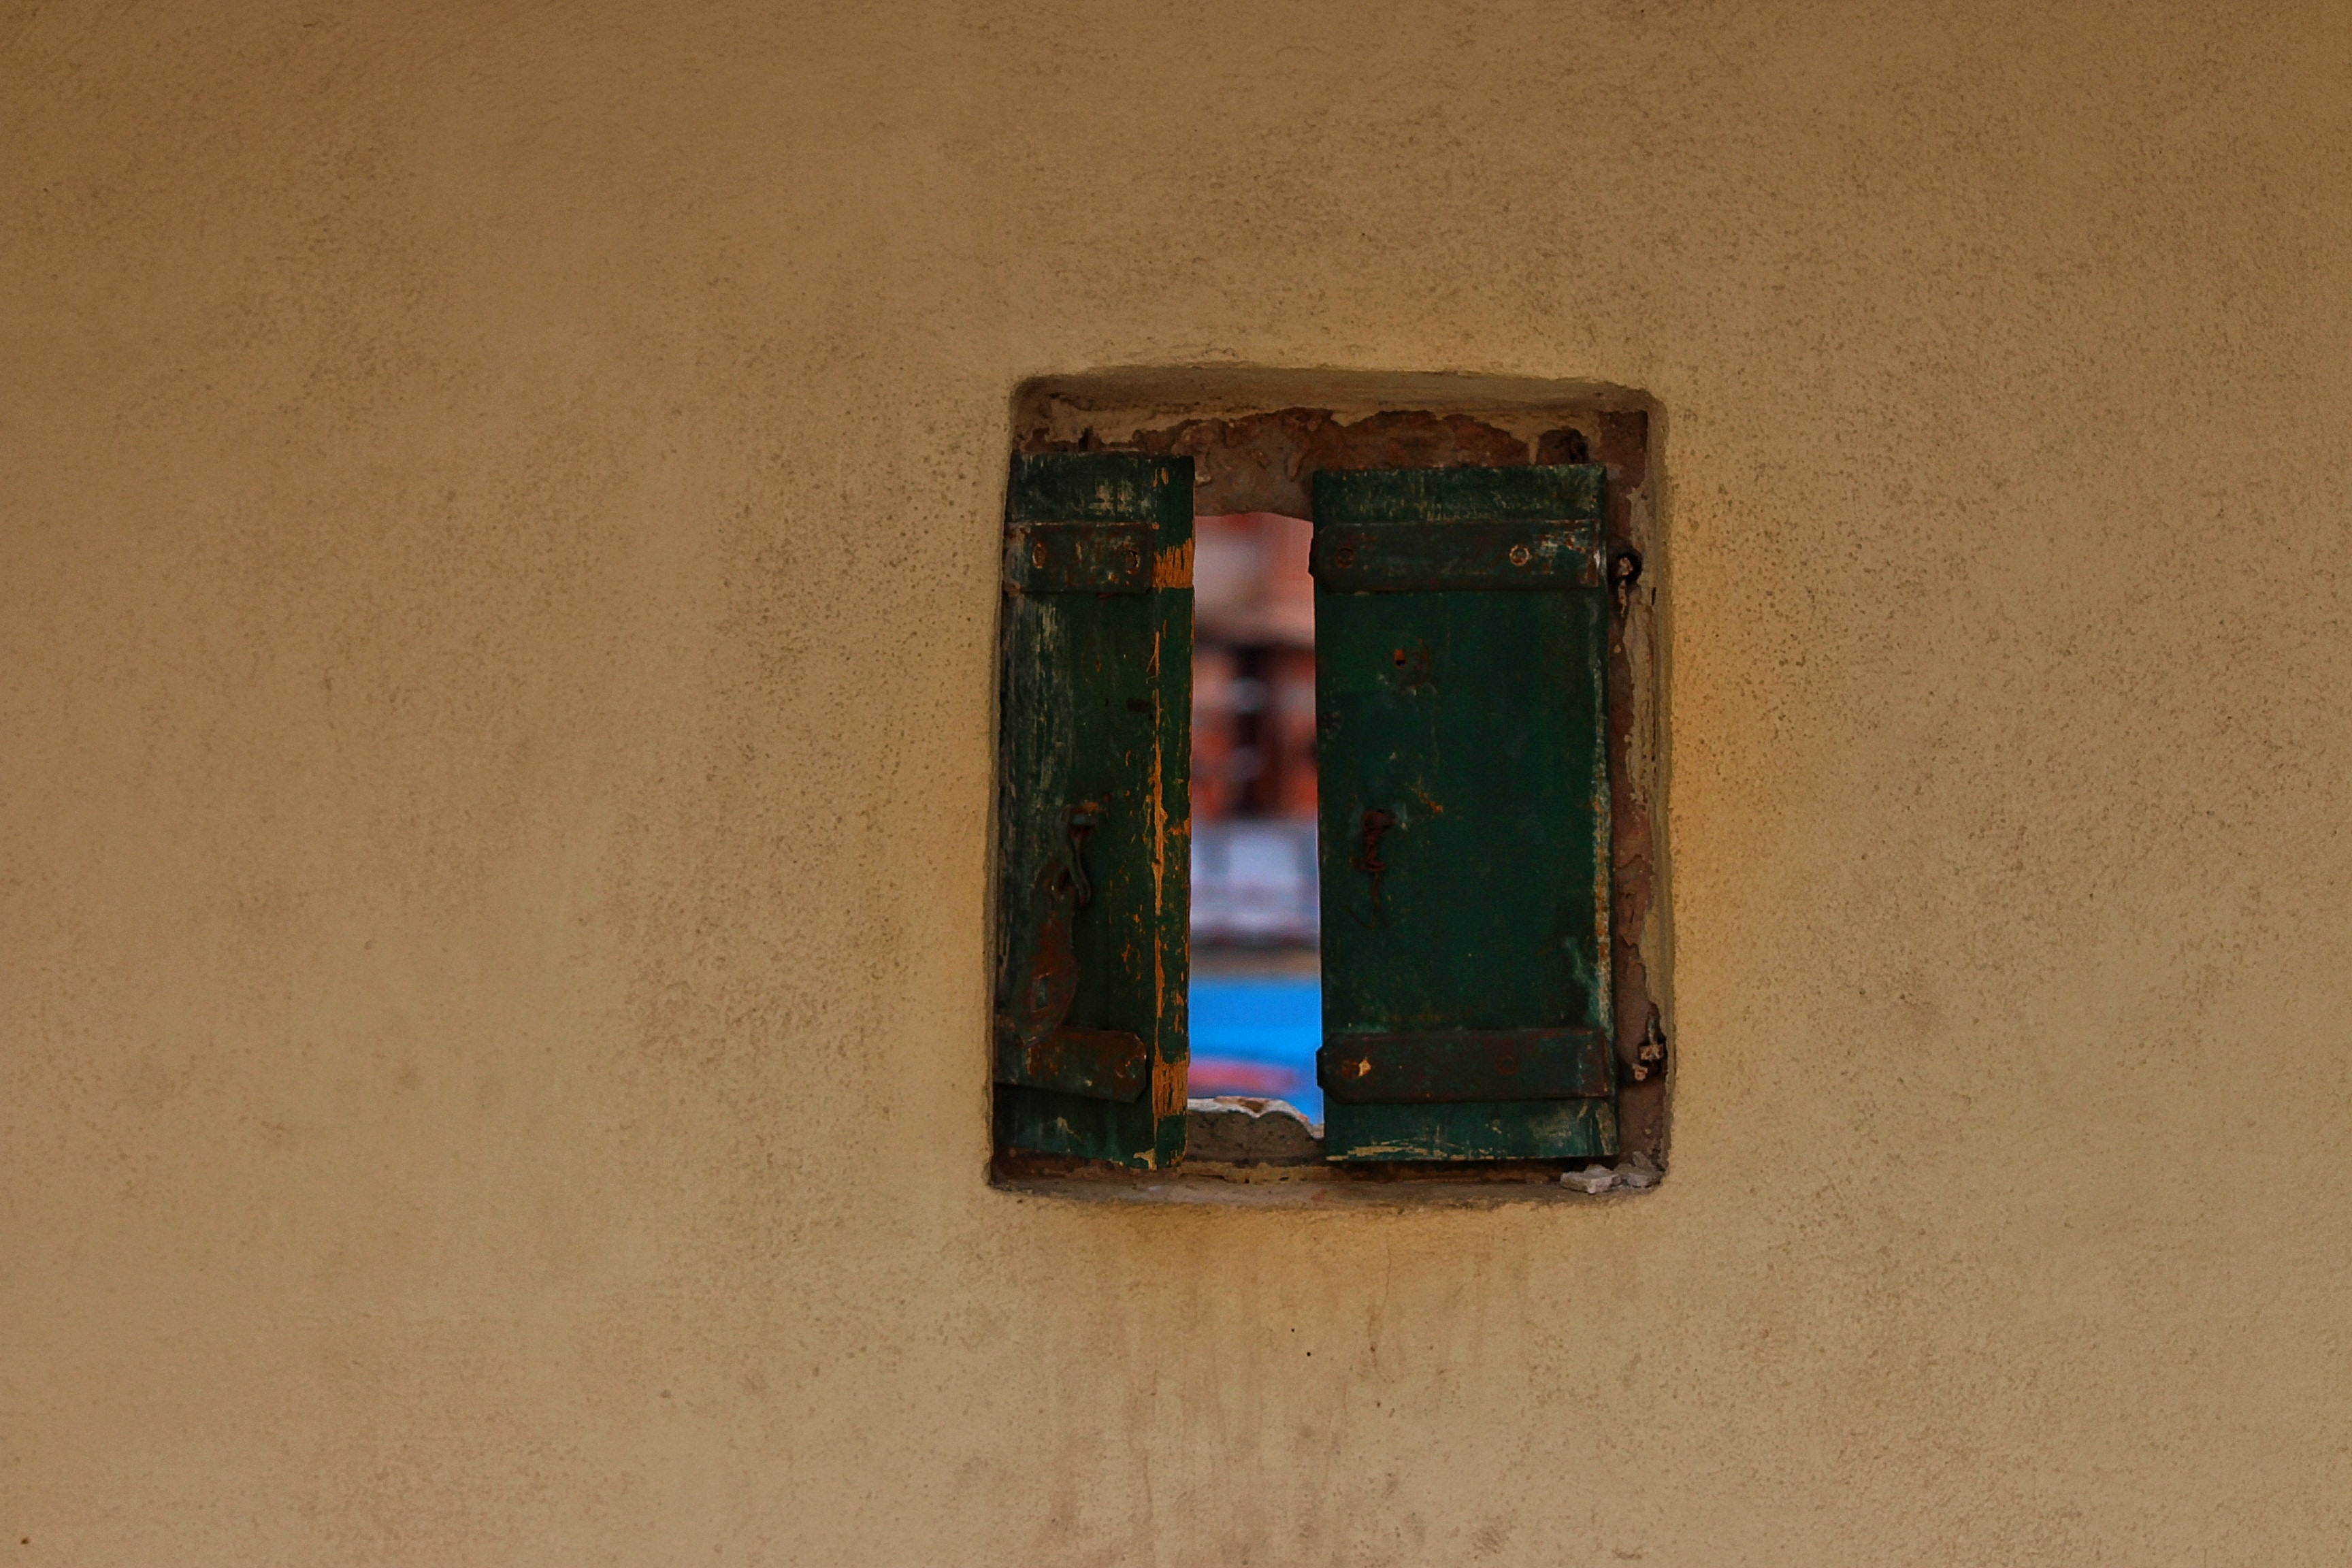 close-up photography of opened blue wooden window